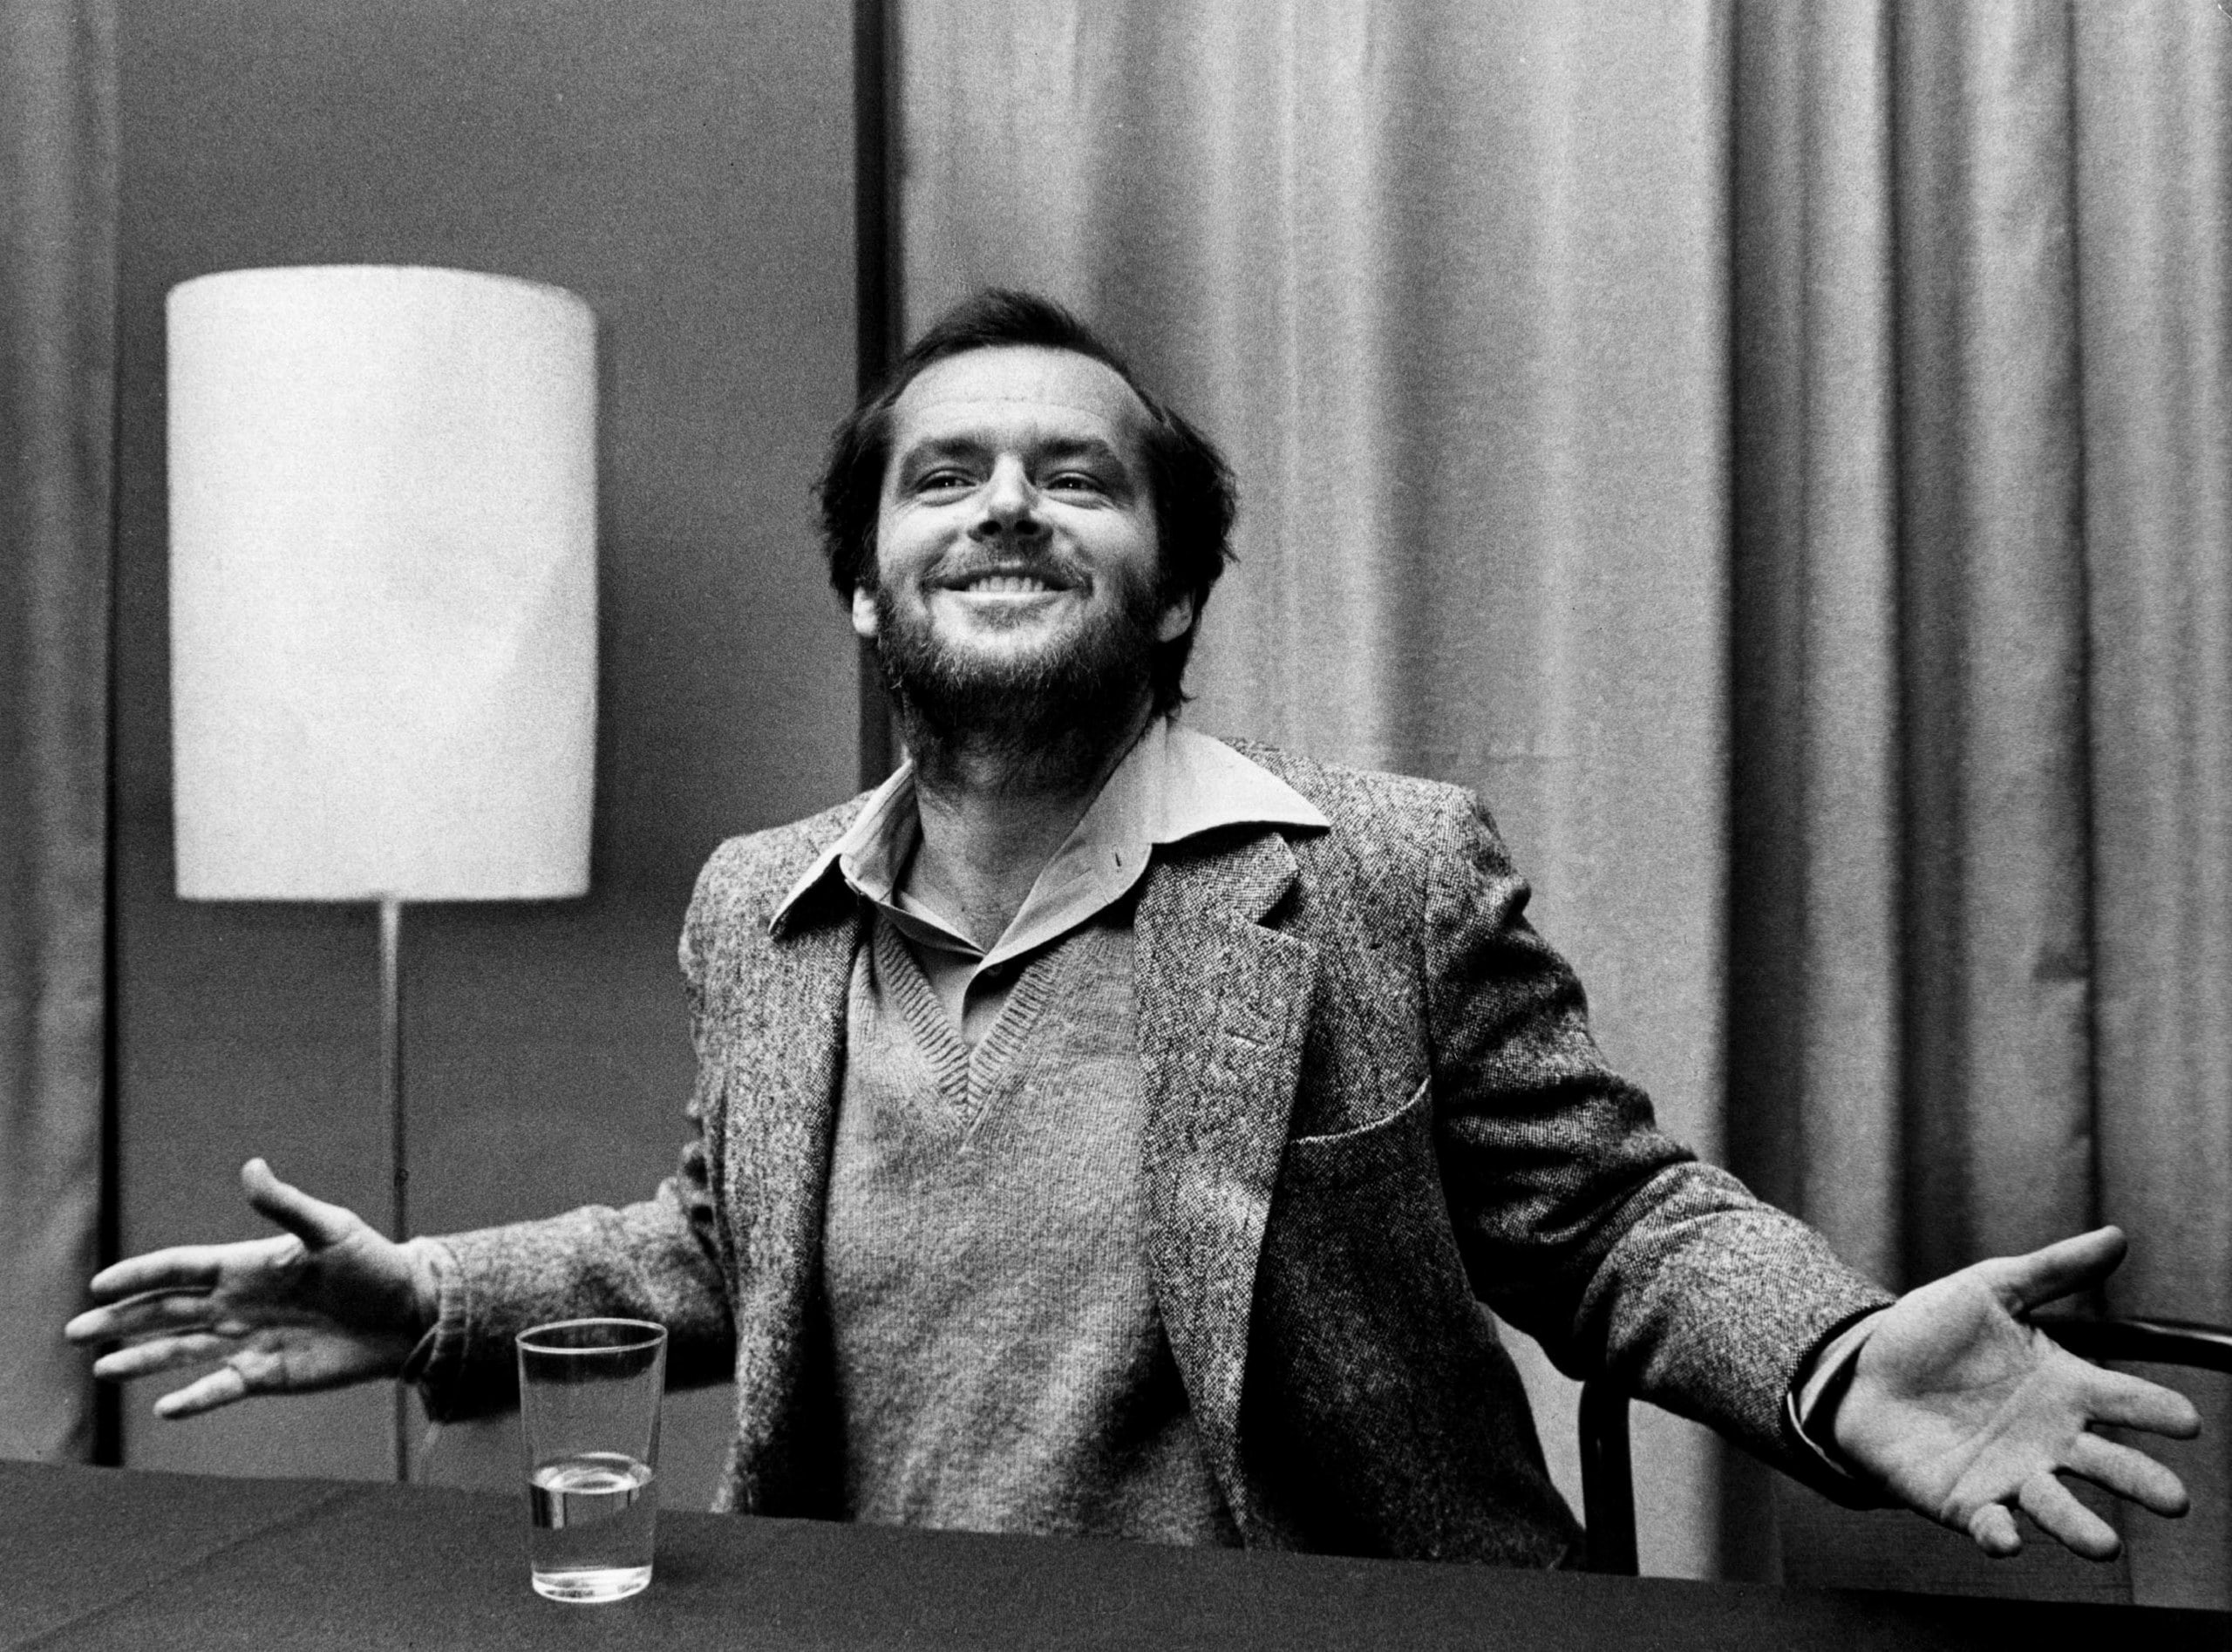 Jack Nicholson Backgrounds